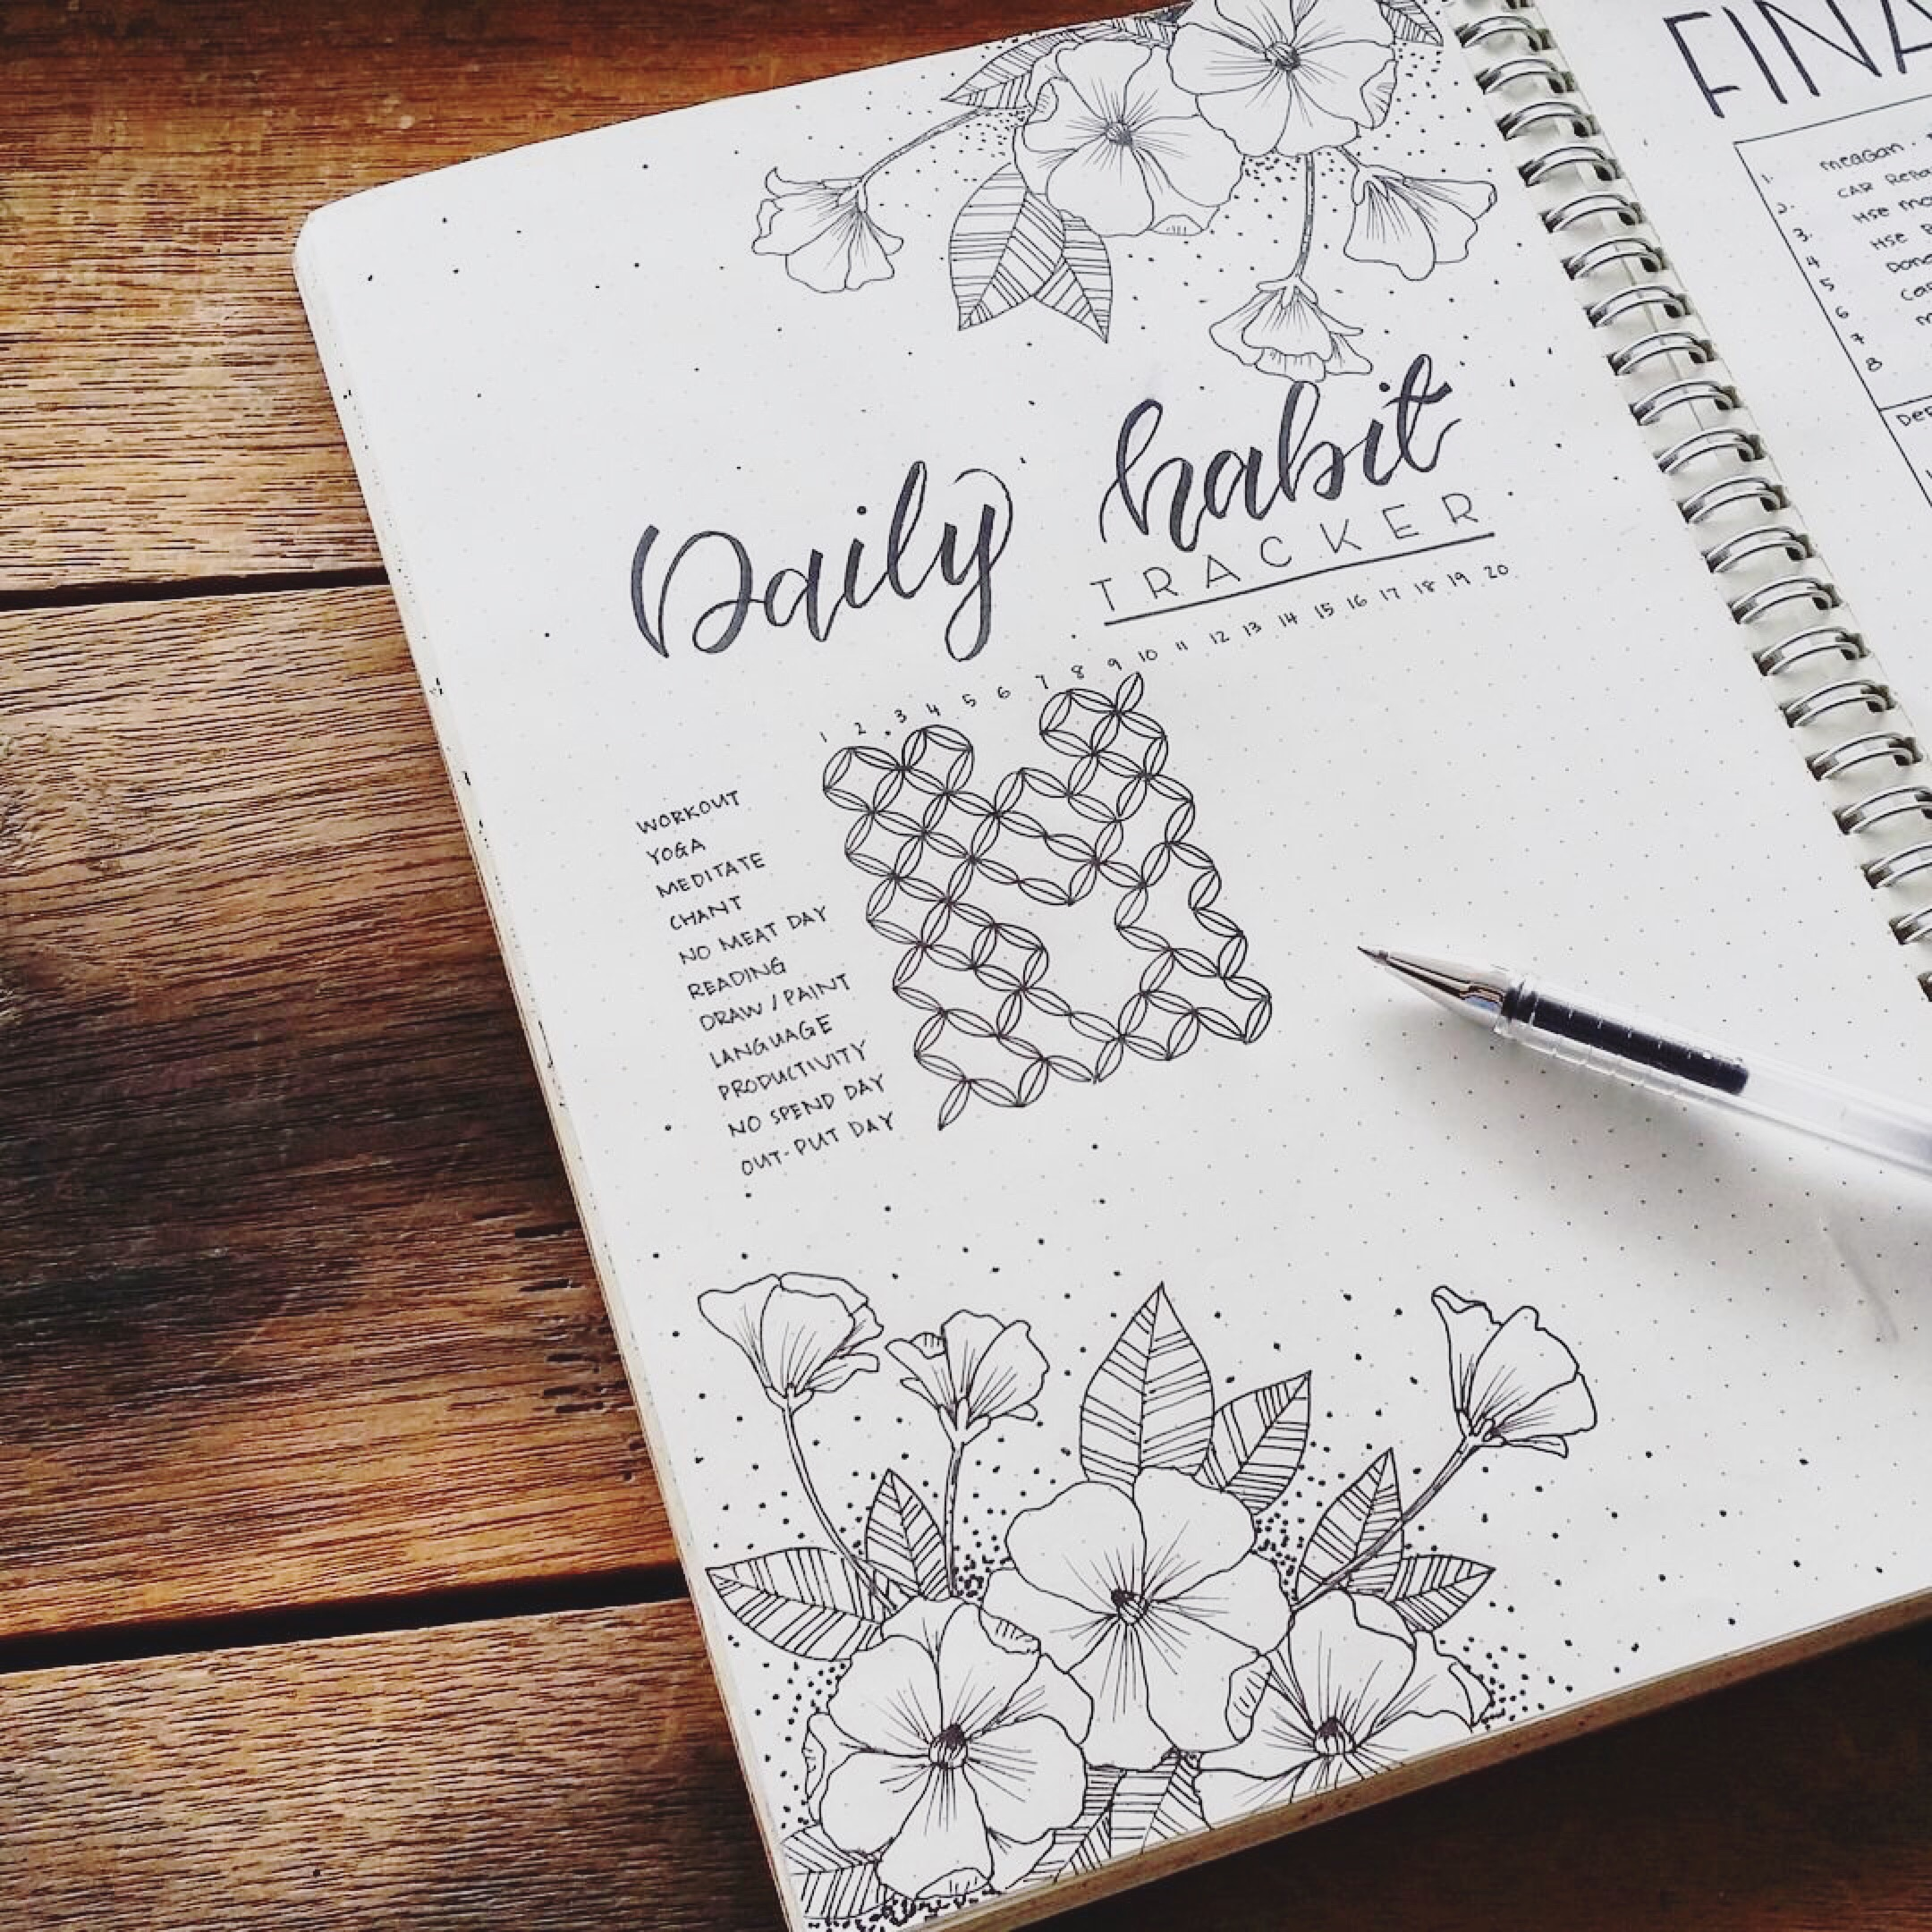 Daily Journal 9.26.18